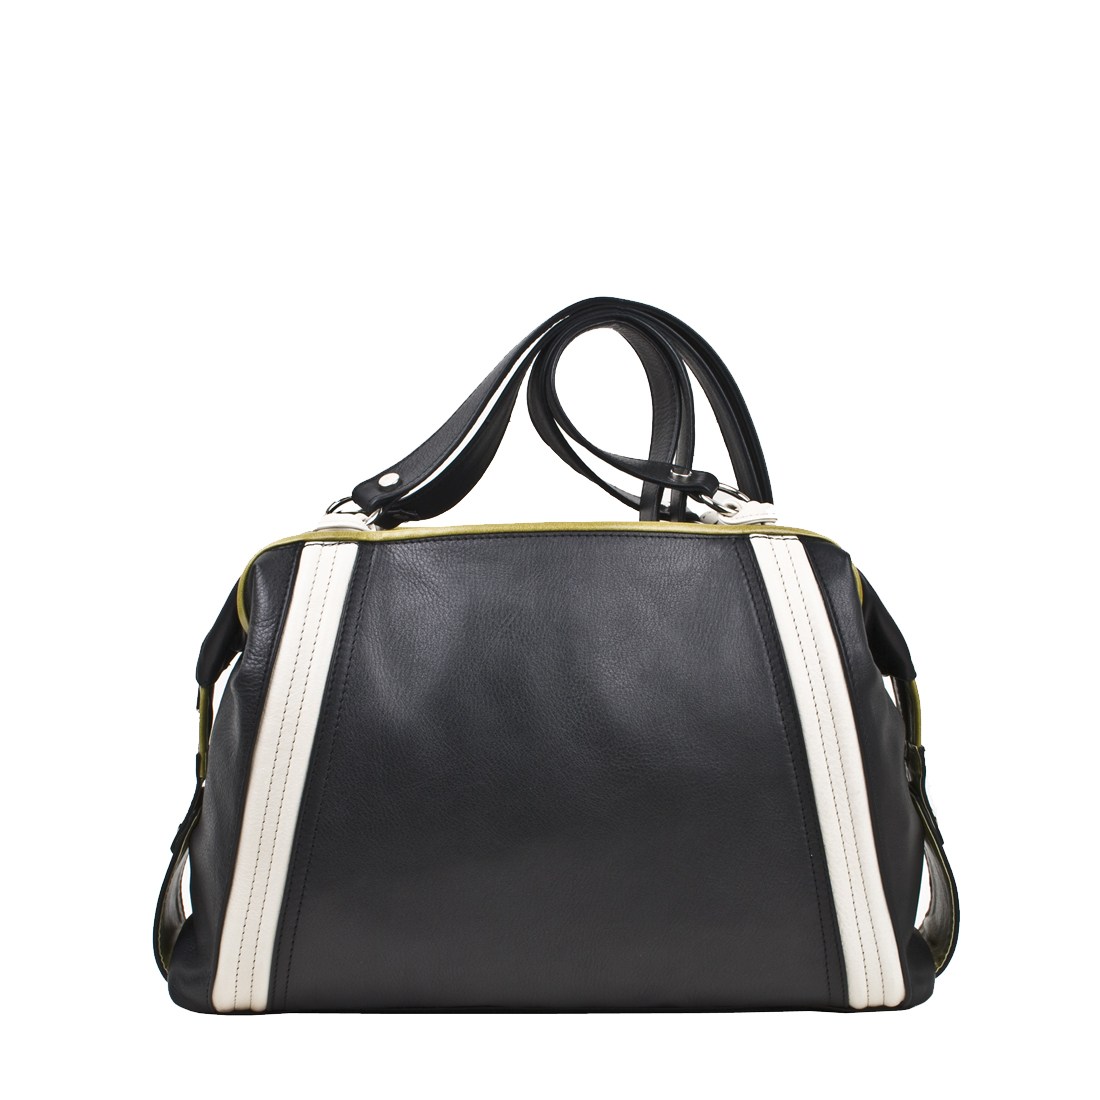 Roxy Black Leather Tote Bag